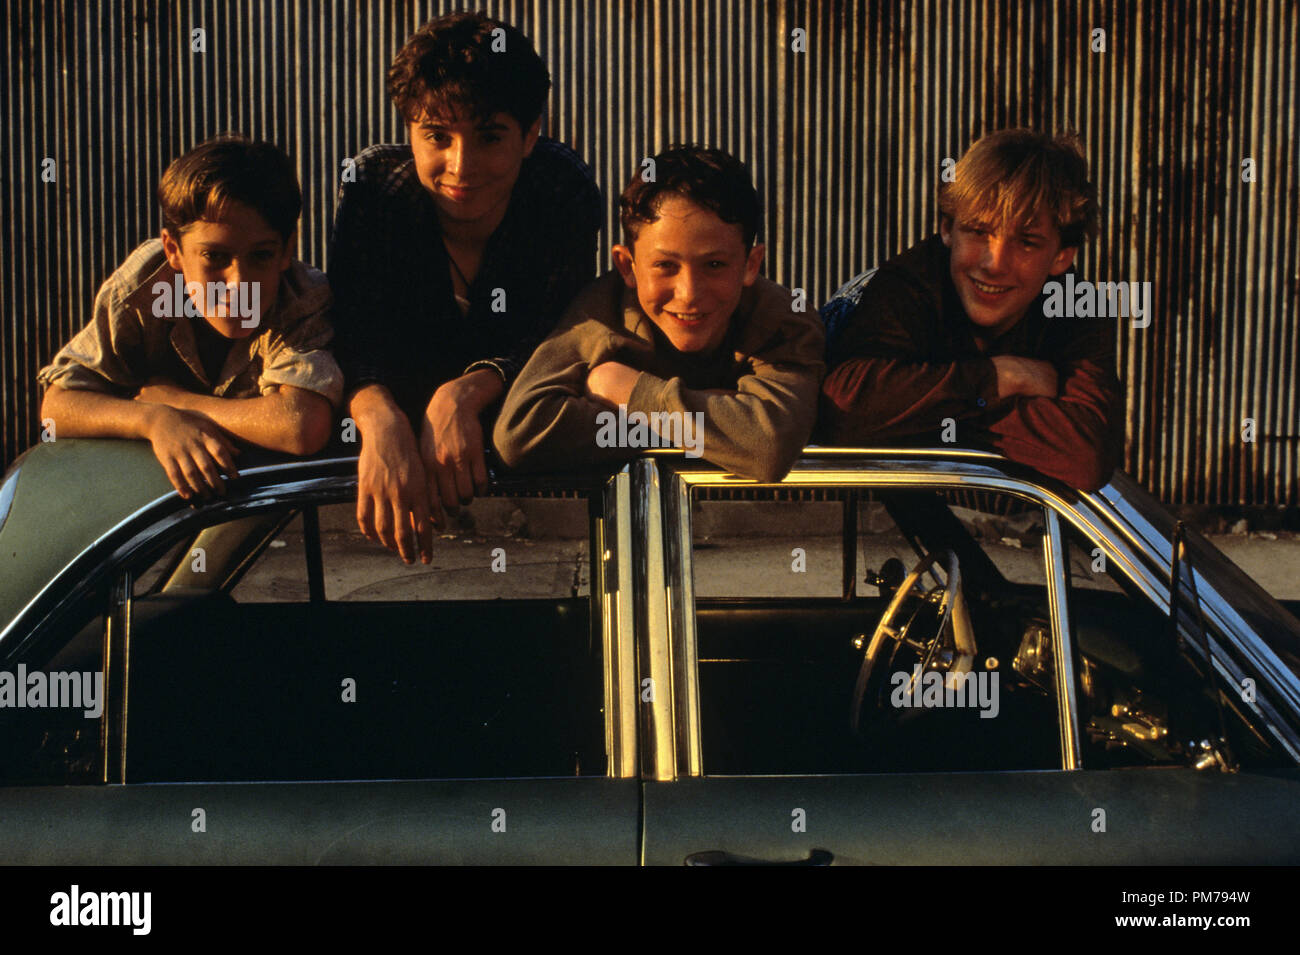 Film Still From Sleepers Geoffrey Wigdor Joseph Perrino Jonathan Tucker Brad Renfro C 1996 Warner Brothers Photo Credit Brian Hamill File Reference 31042250tha For Editorial Use Only All Rights Reserved Stock Photo Alamy